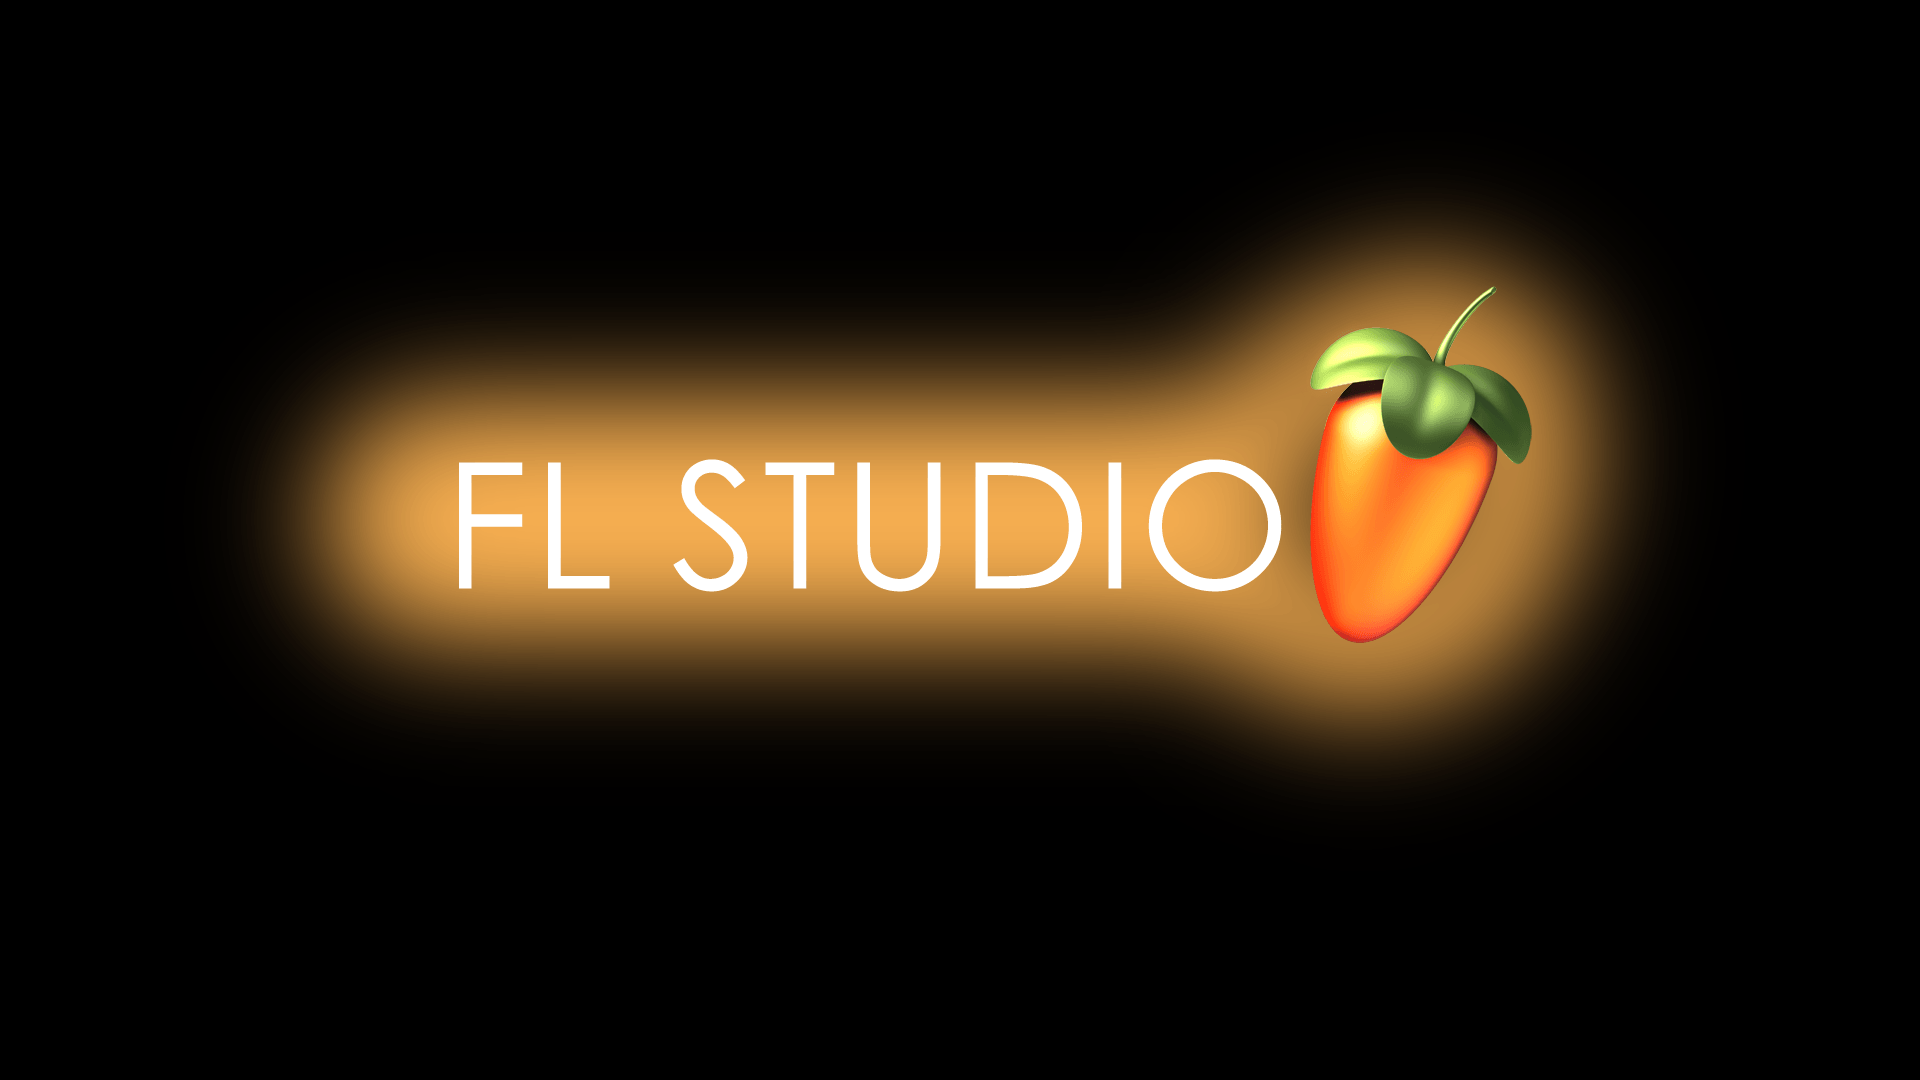 Fl Studio Wallpapers HD